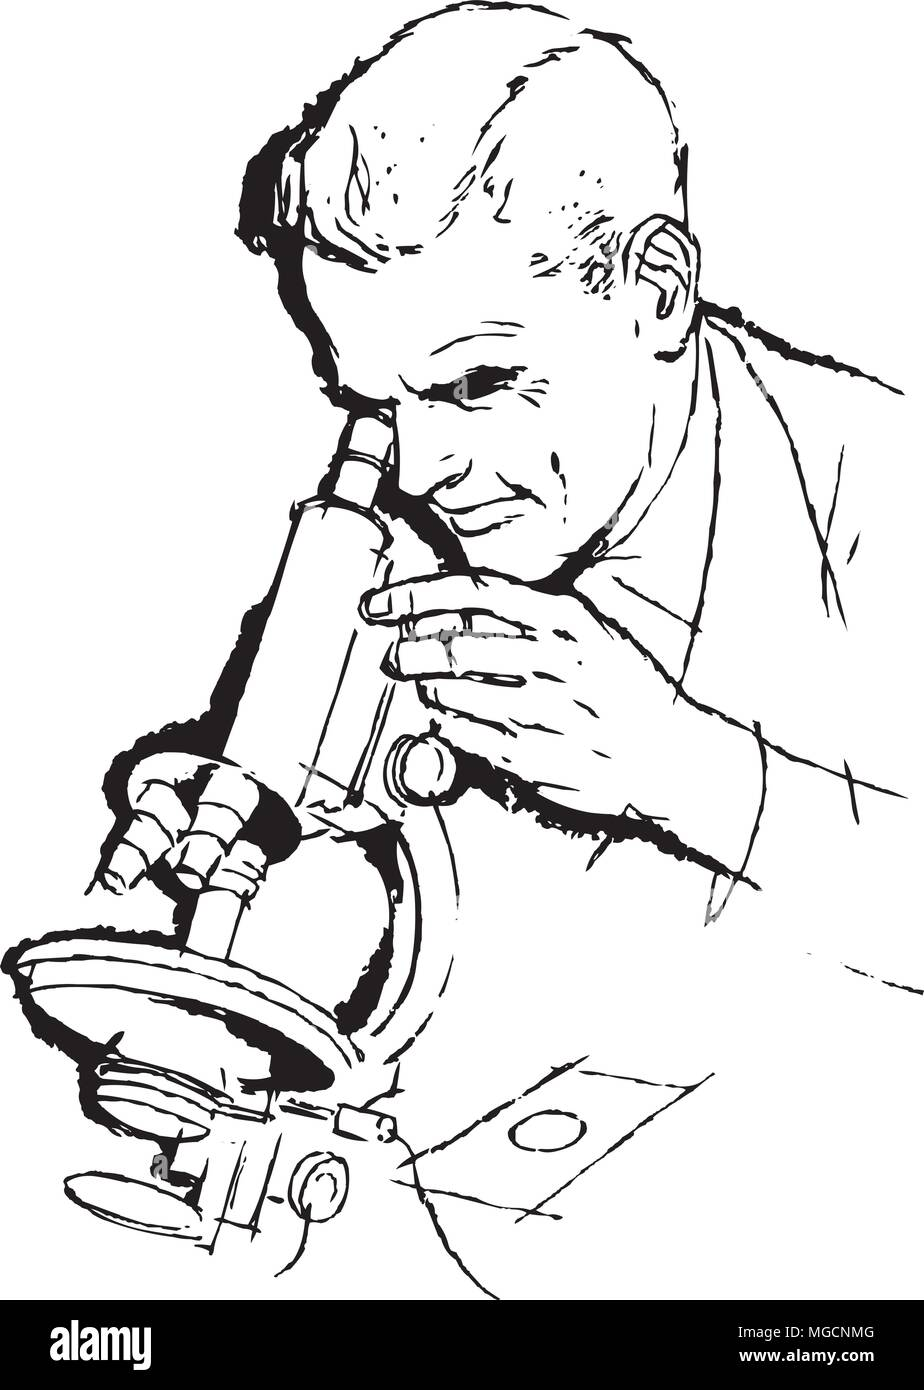 Scientist And Microscope Retro Clipart Illustration Stock Vector Image Art Alamy Any pictures from dynamicpickaxe can be used for your creativity! https www alamy com scientist and microscope retro clipart illustration image182218640 html